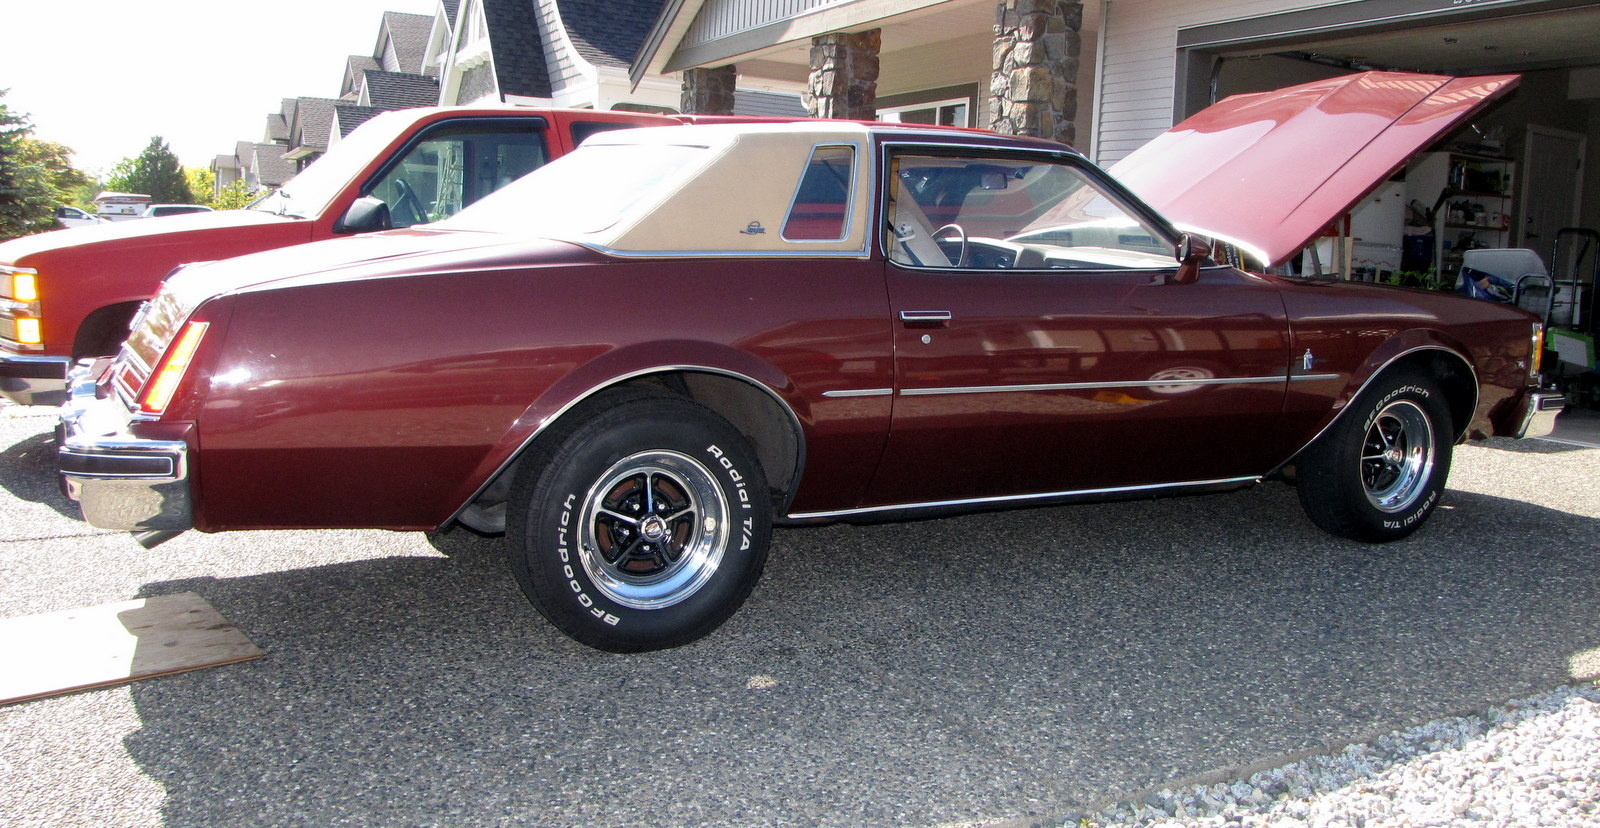 Buick Regal Questions I Have A 1976 Buick Regal Sr With